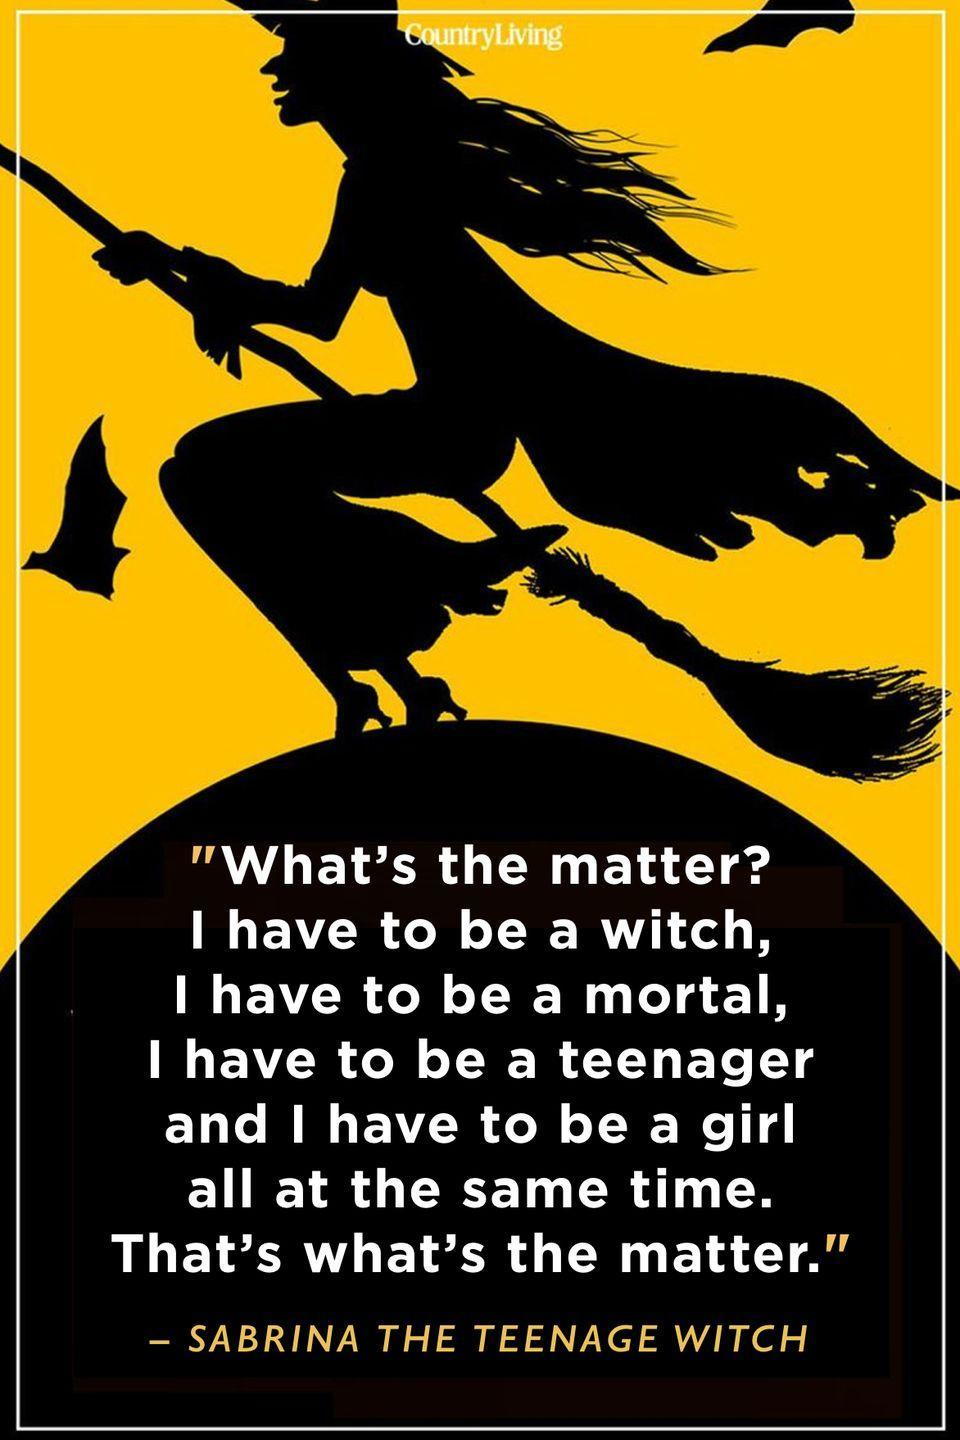 """<p>""""What's the matter? I have to be a witch, I have to be a mortal, I have to be a teenager and I have to be a girl all at the same time. That's what's the matter.""""</p>"""